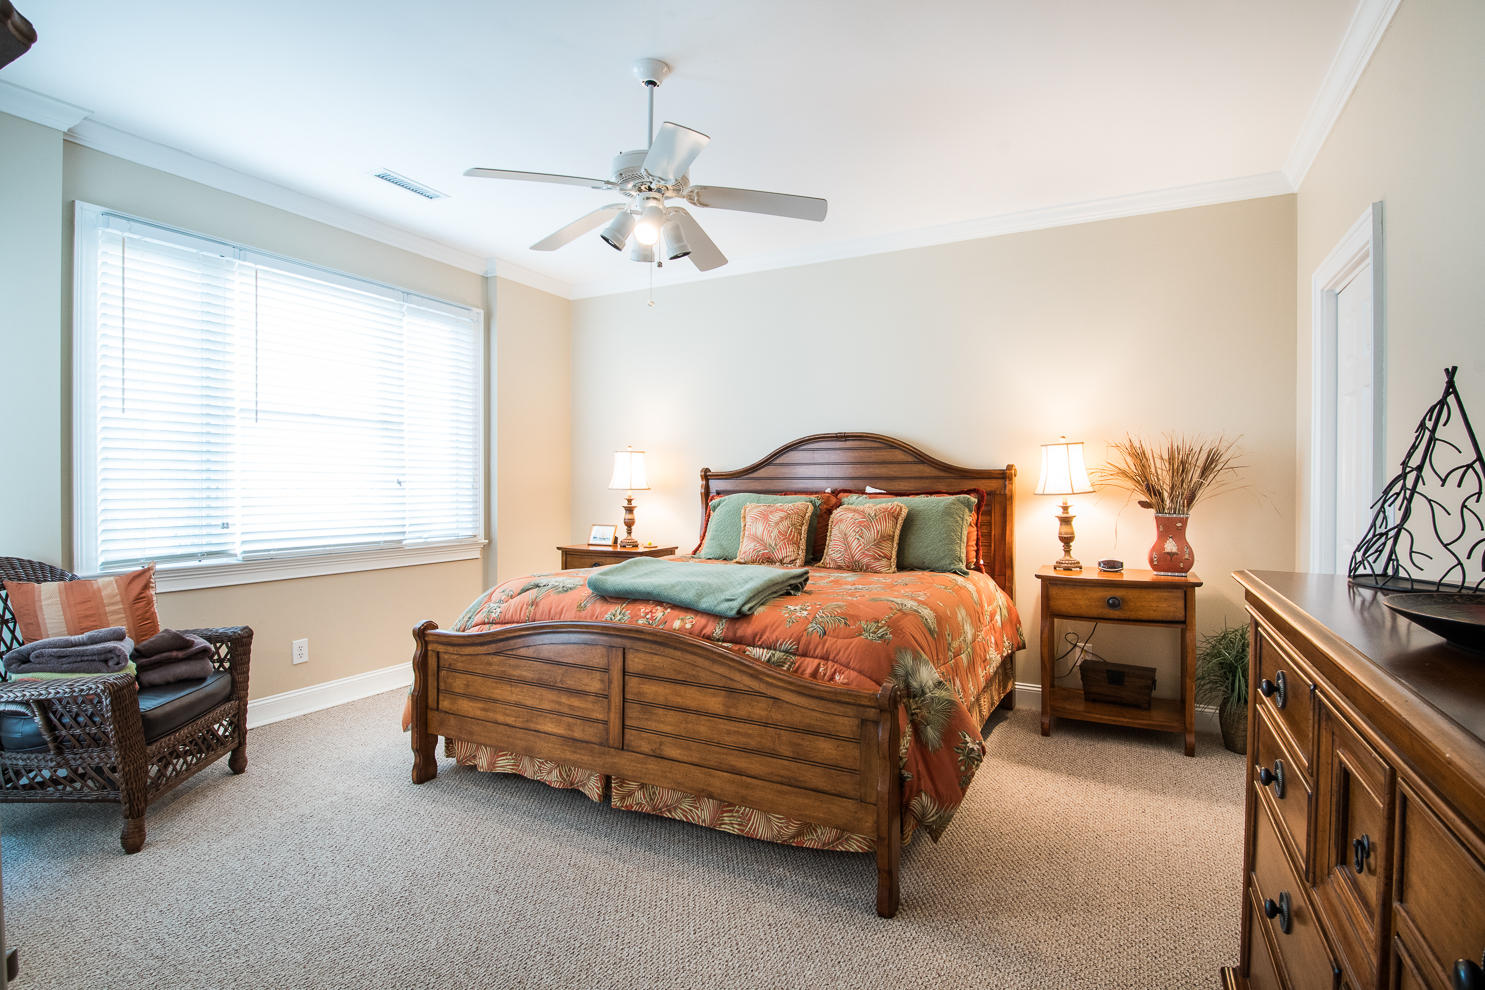 Tolers Cove Homes For Sale - B-4 & B-5 Tolers Cove Marina 70ft + Home, Mount Pleasant, SC - 9